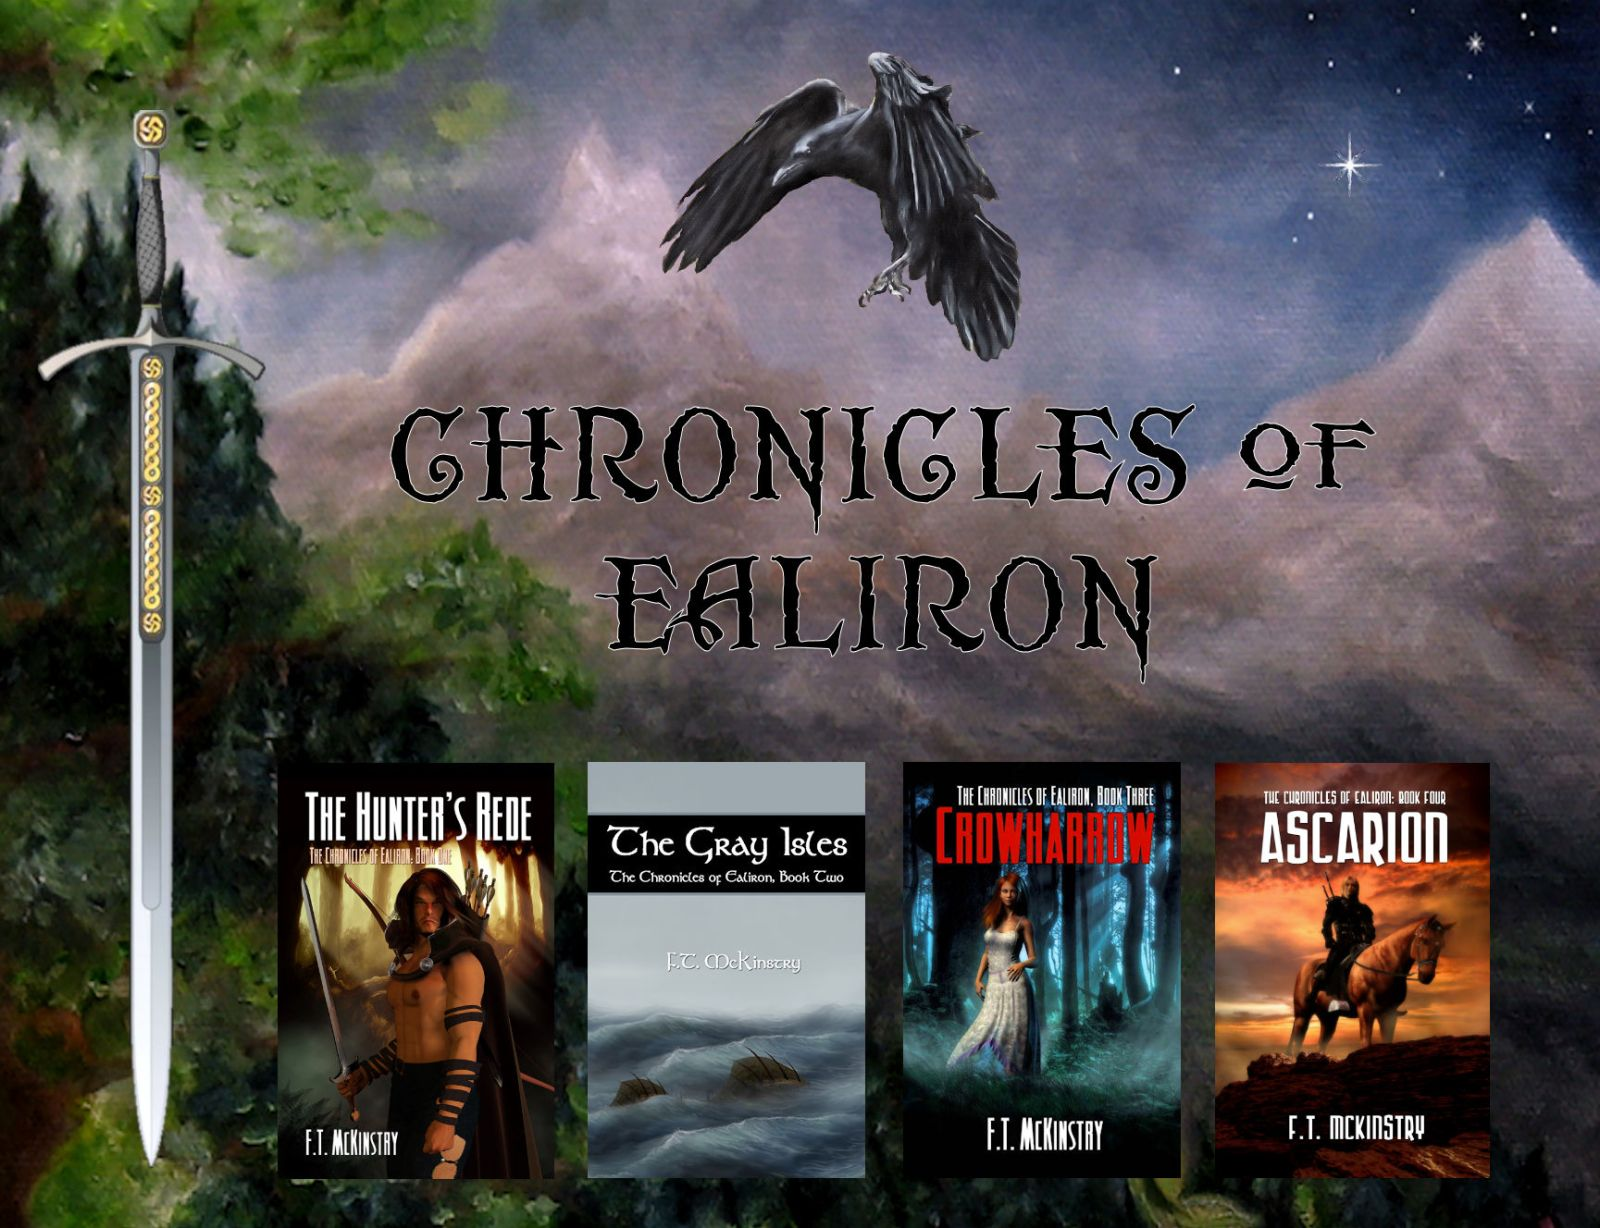 Chronicles of Ealiron, by F.T. McKinstry